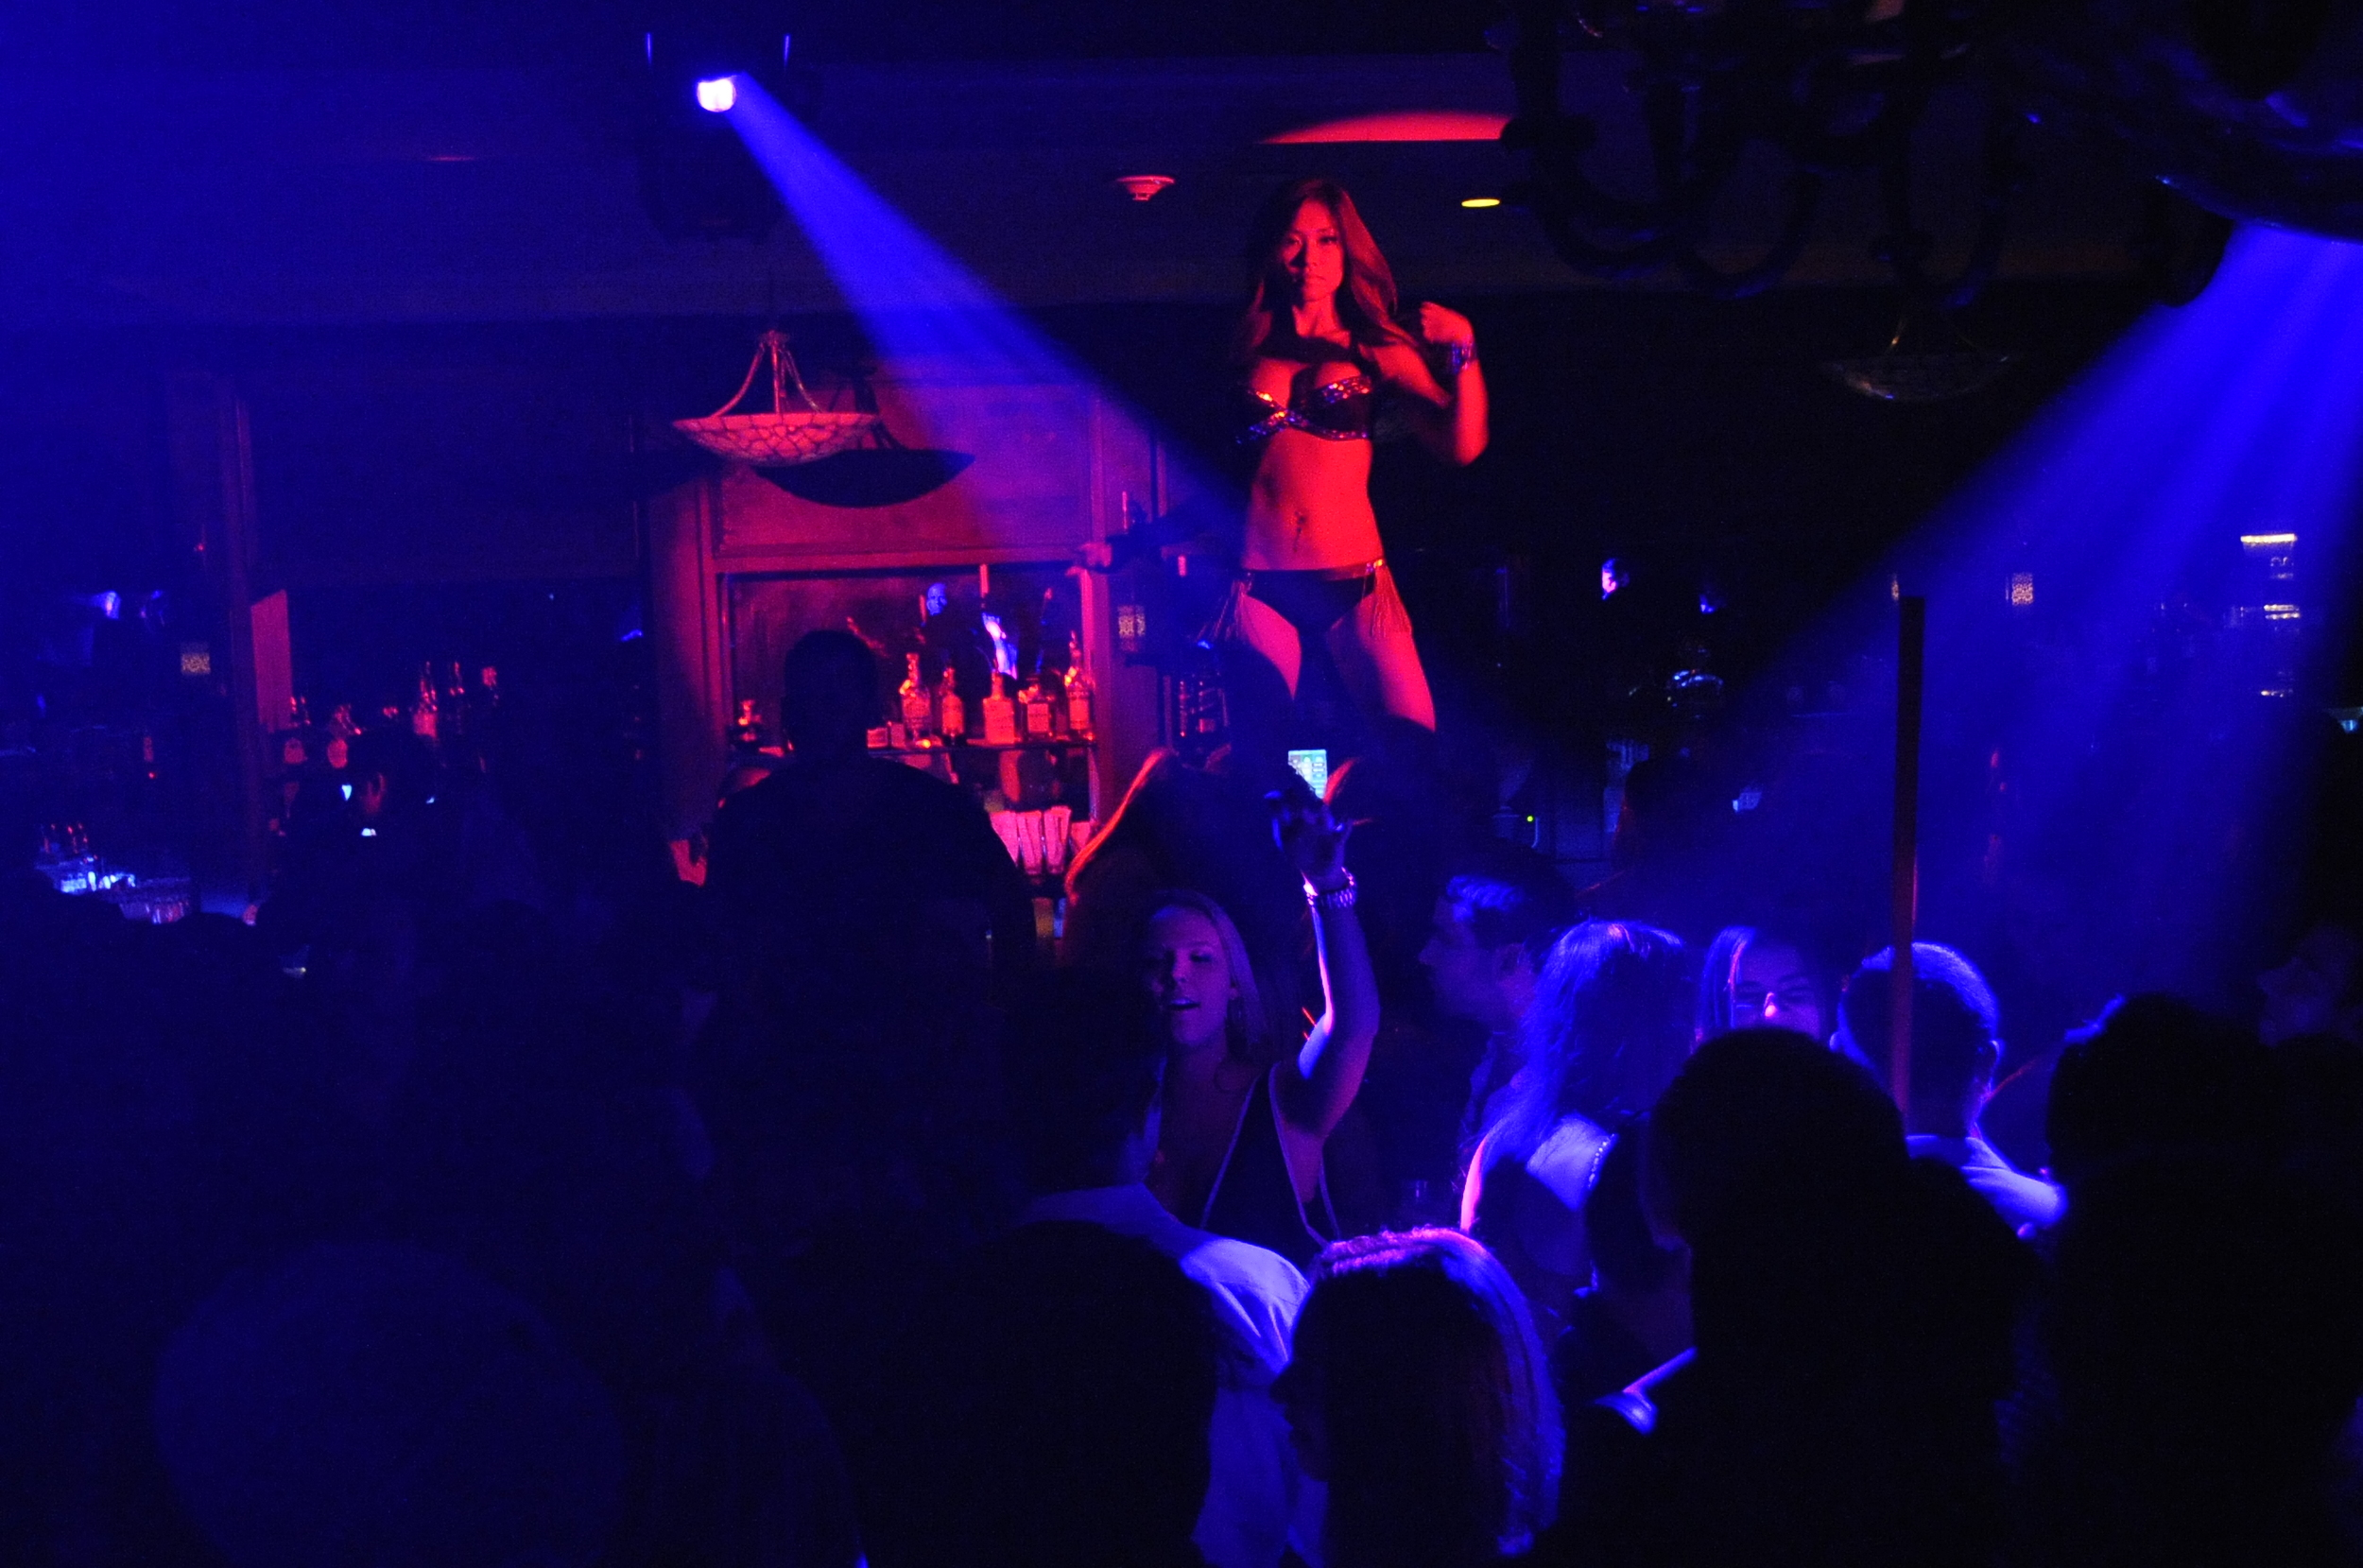 Dancer in 10oak nightclub in South Hampton